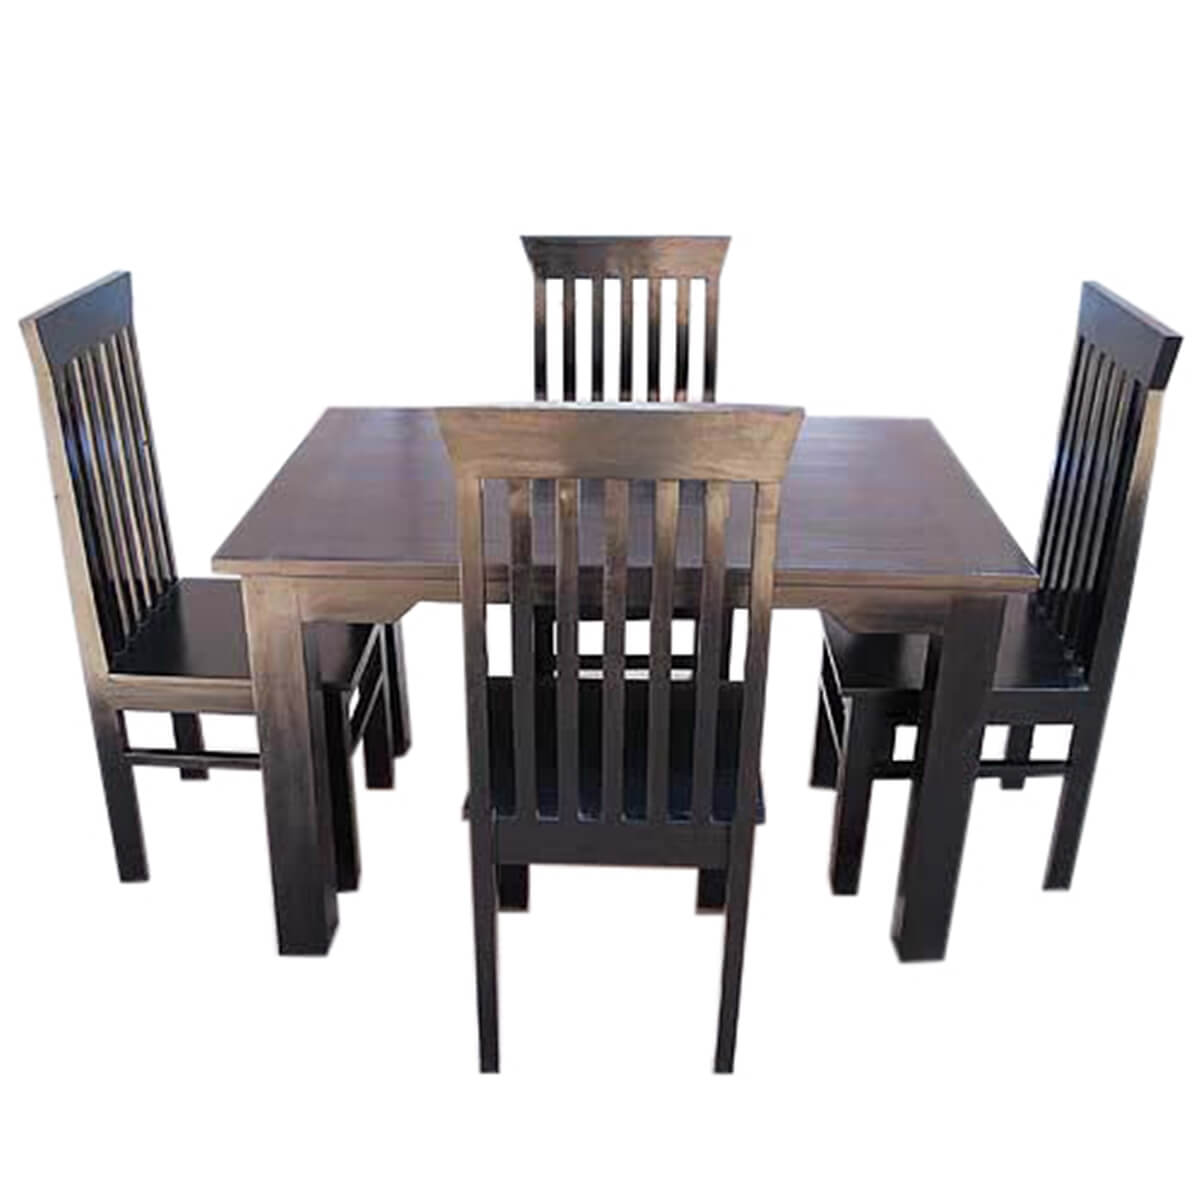 Contemporary lincoln kitchen dining room table chairs set for Kitchen dining table chairs